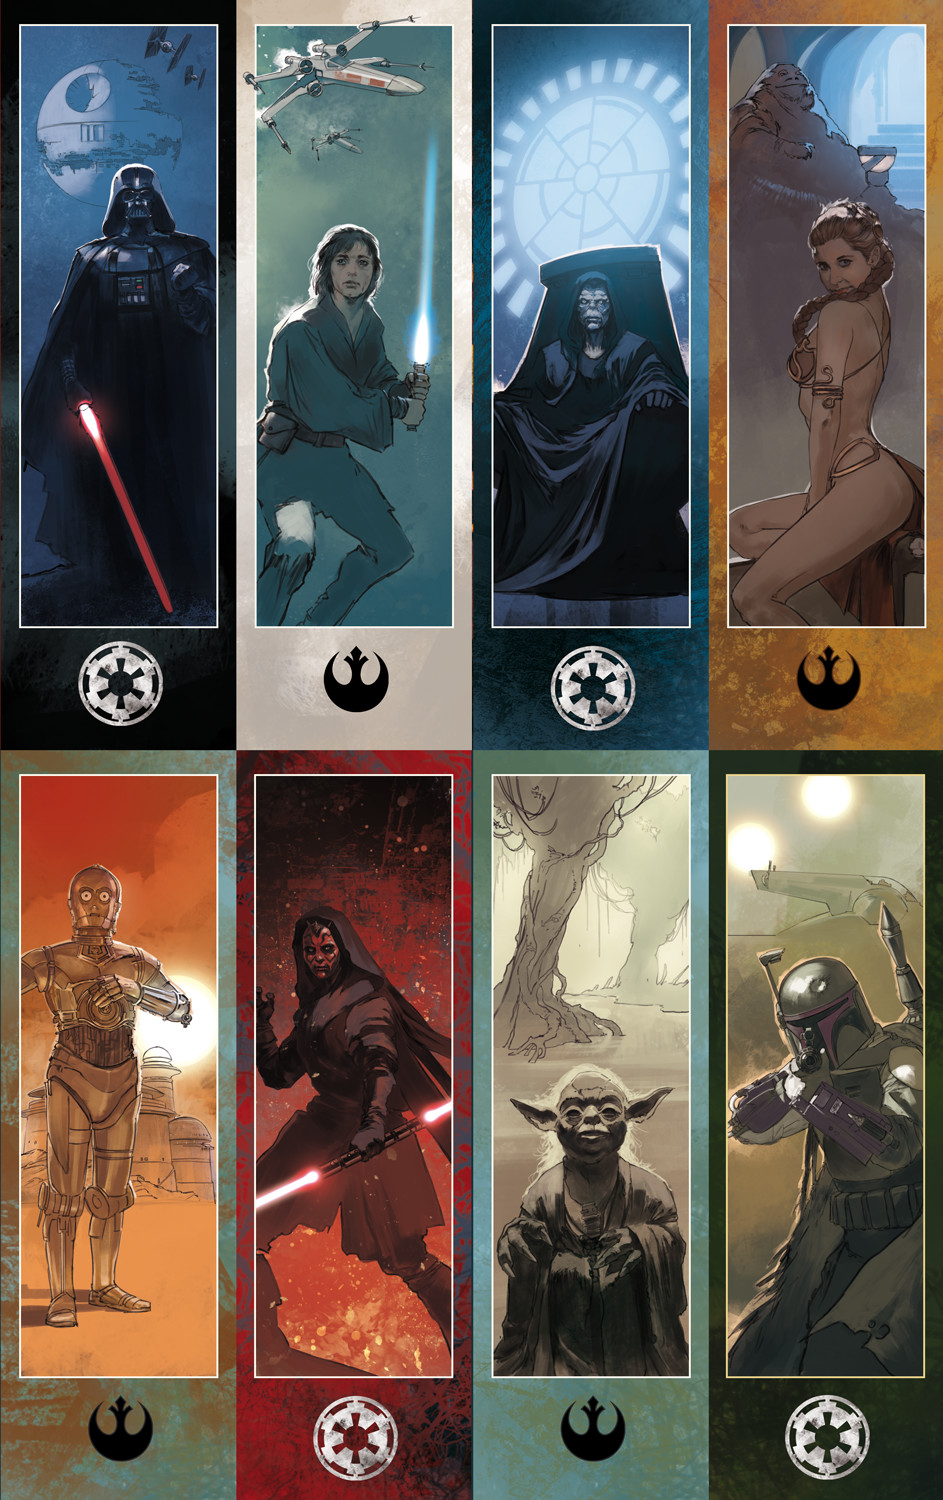 image relating to Star Wars Bookmark Printable identify Star Wars Bookmarks Selection by way of Tomasz Jedruszek : StarWars